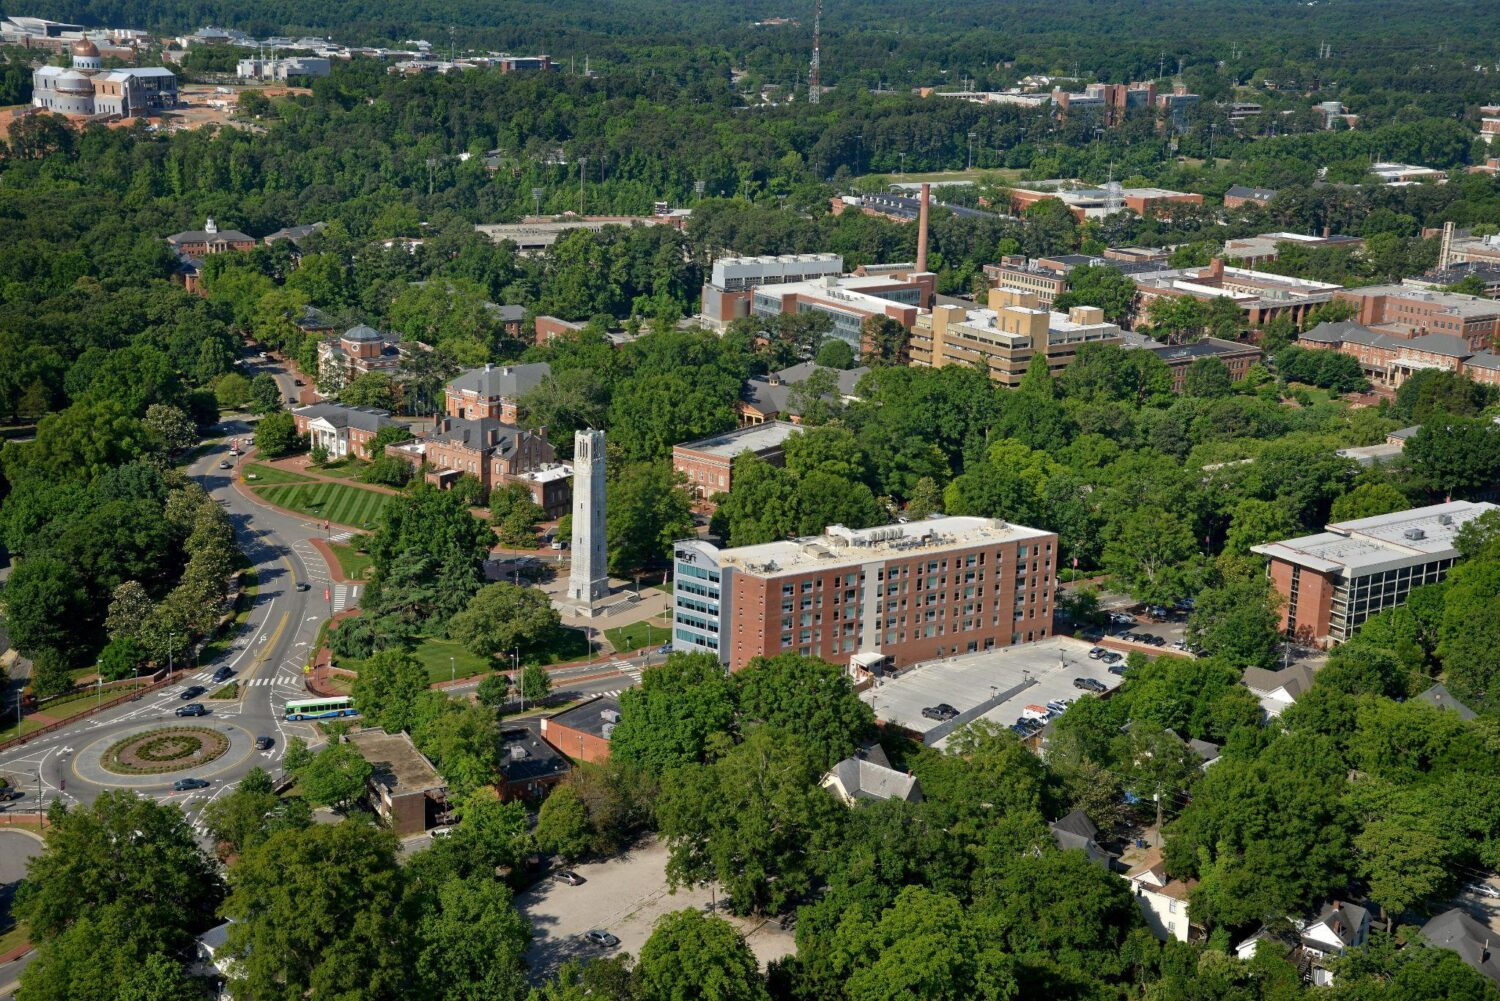 An aerial view of NC State's main campus and belltower